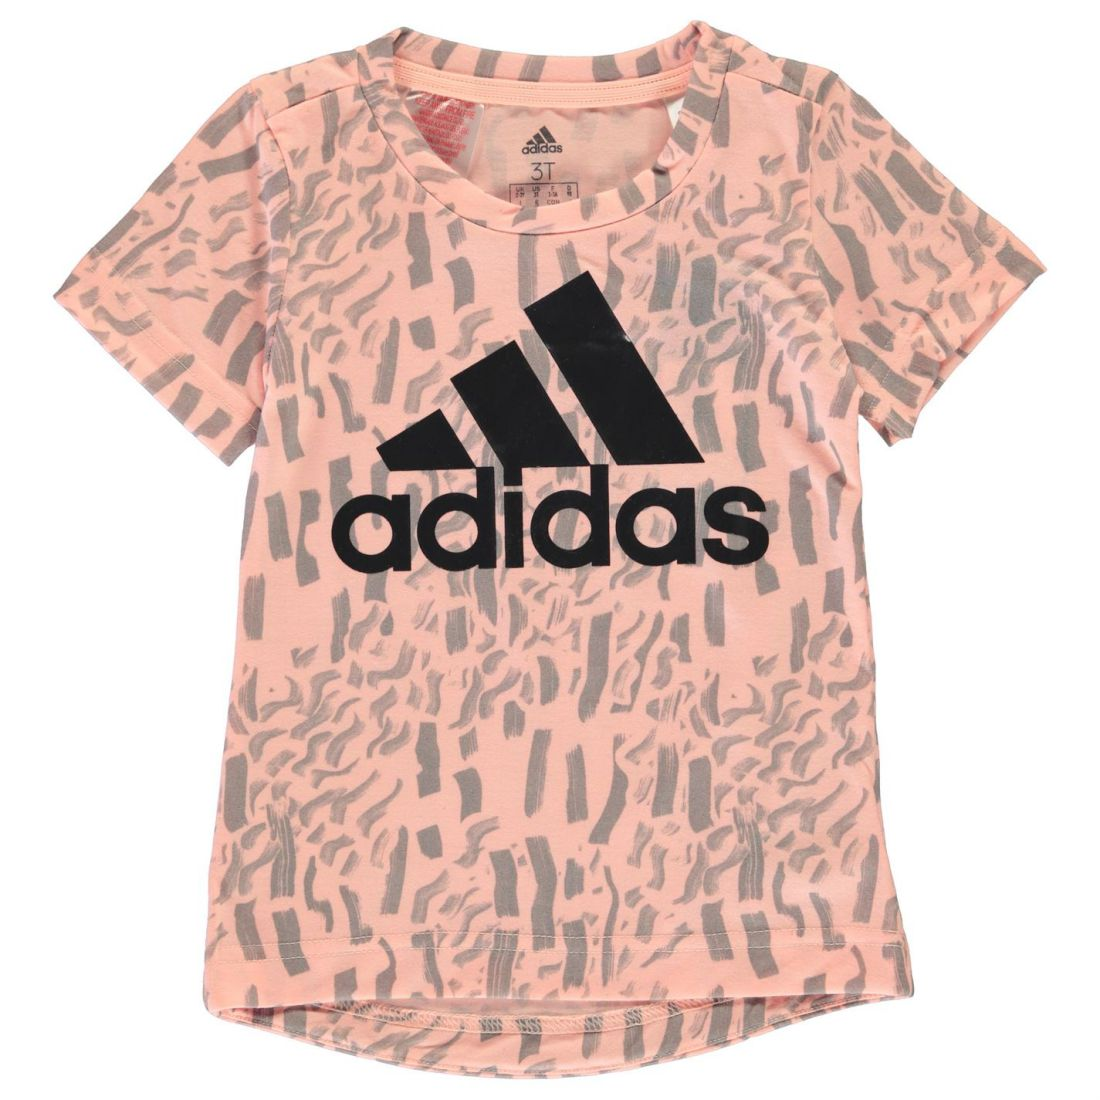 acb614ee adidas Kids Girls Badge Of Sport T Shirt Short Sleeve Performance ...